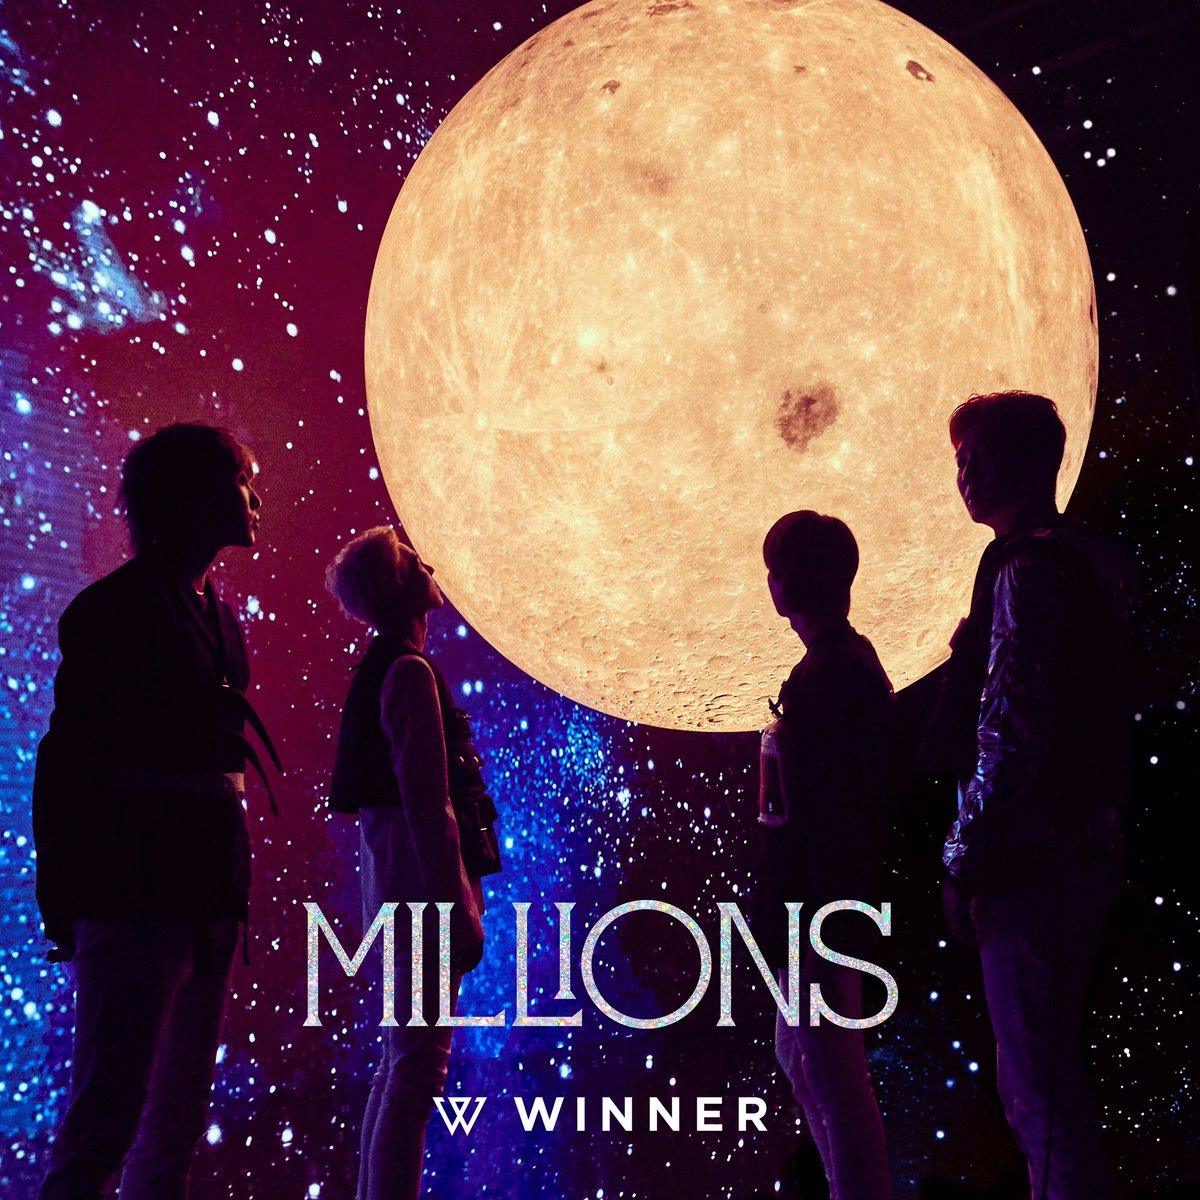 ANDRES's photo on #MILLIONS6thWIN